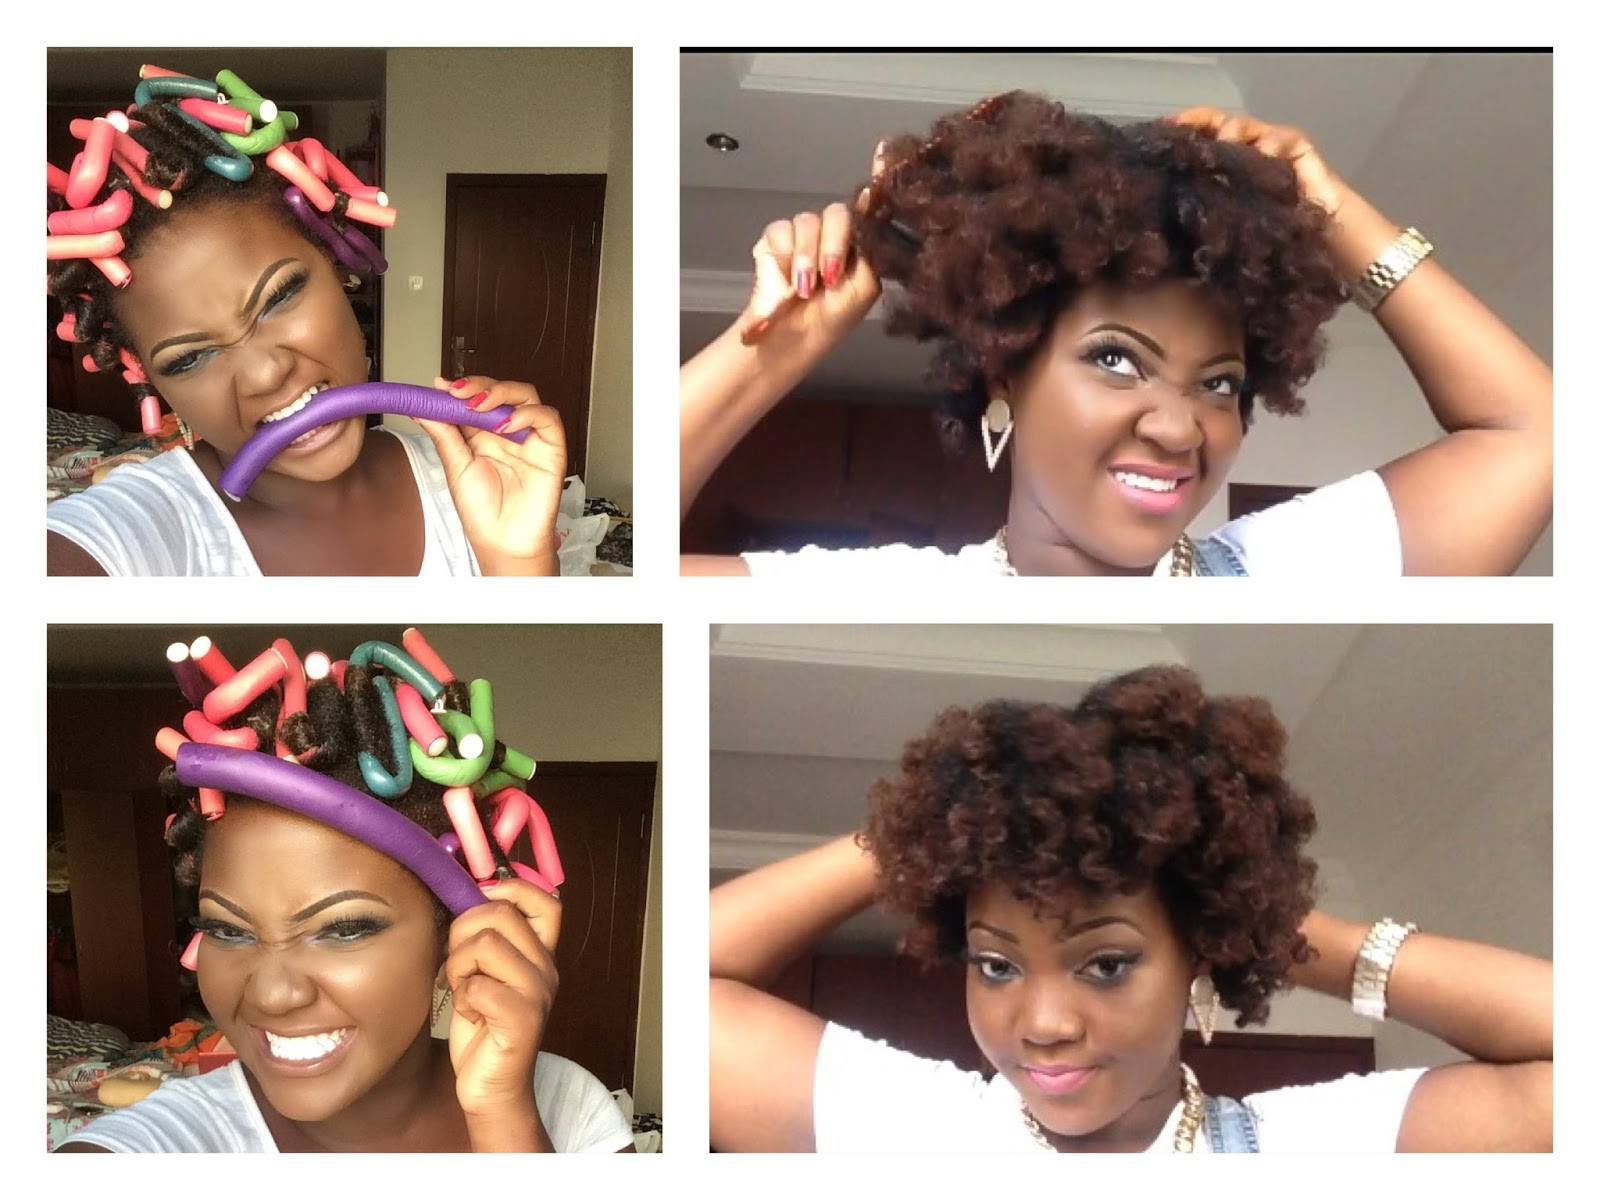 Uwani aliyu hair how i use flexi rodsbendy rollers on my in the video im using about 40 flexi rods bendy rollers on my hair my natural 4b4c hair im using cantu shea curl activator cream and water and baditri Choice Image